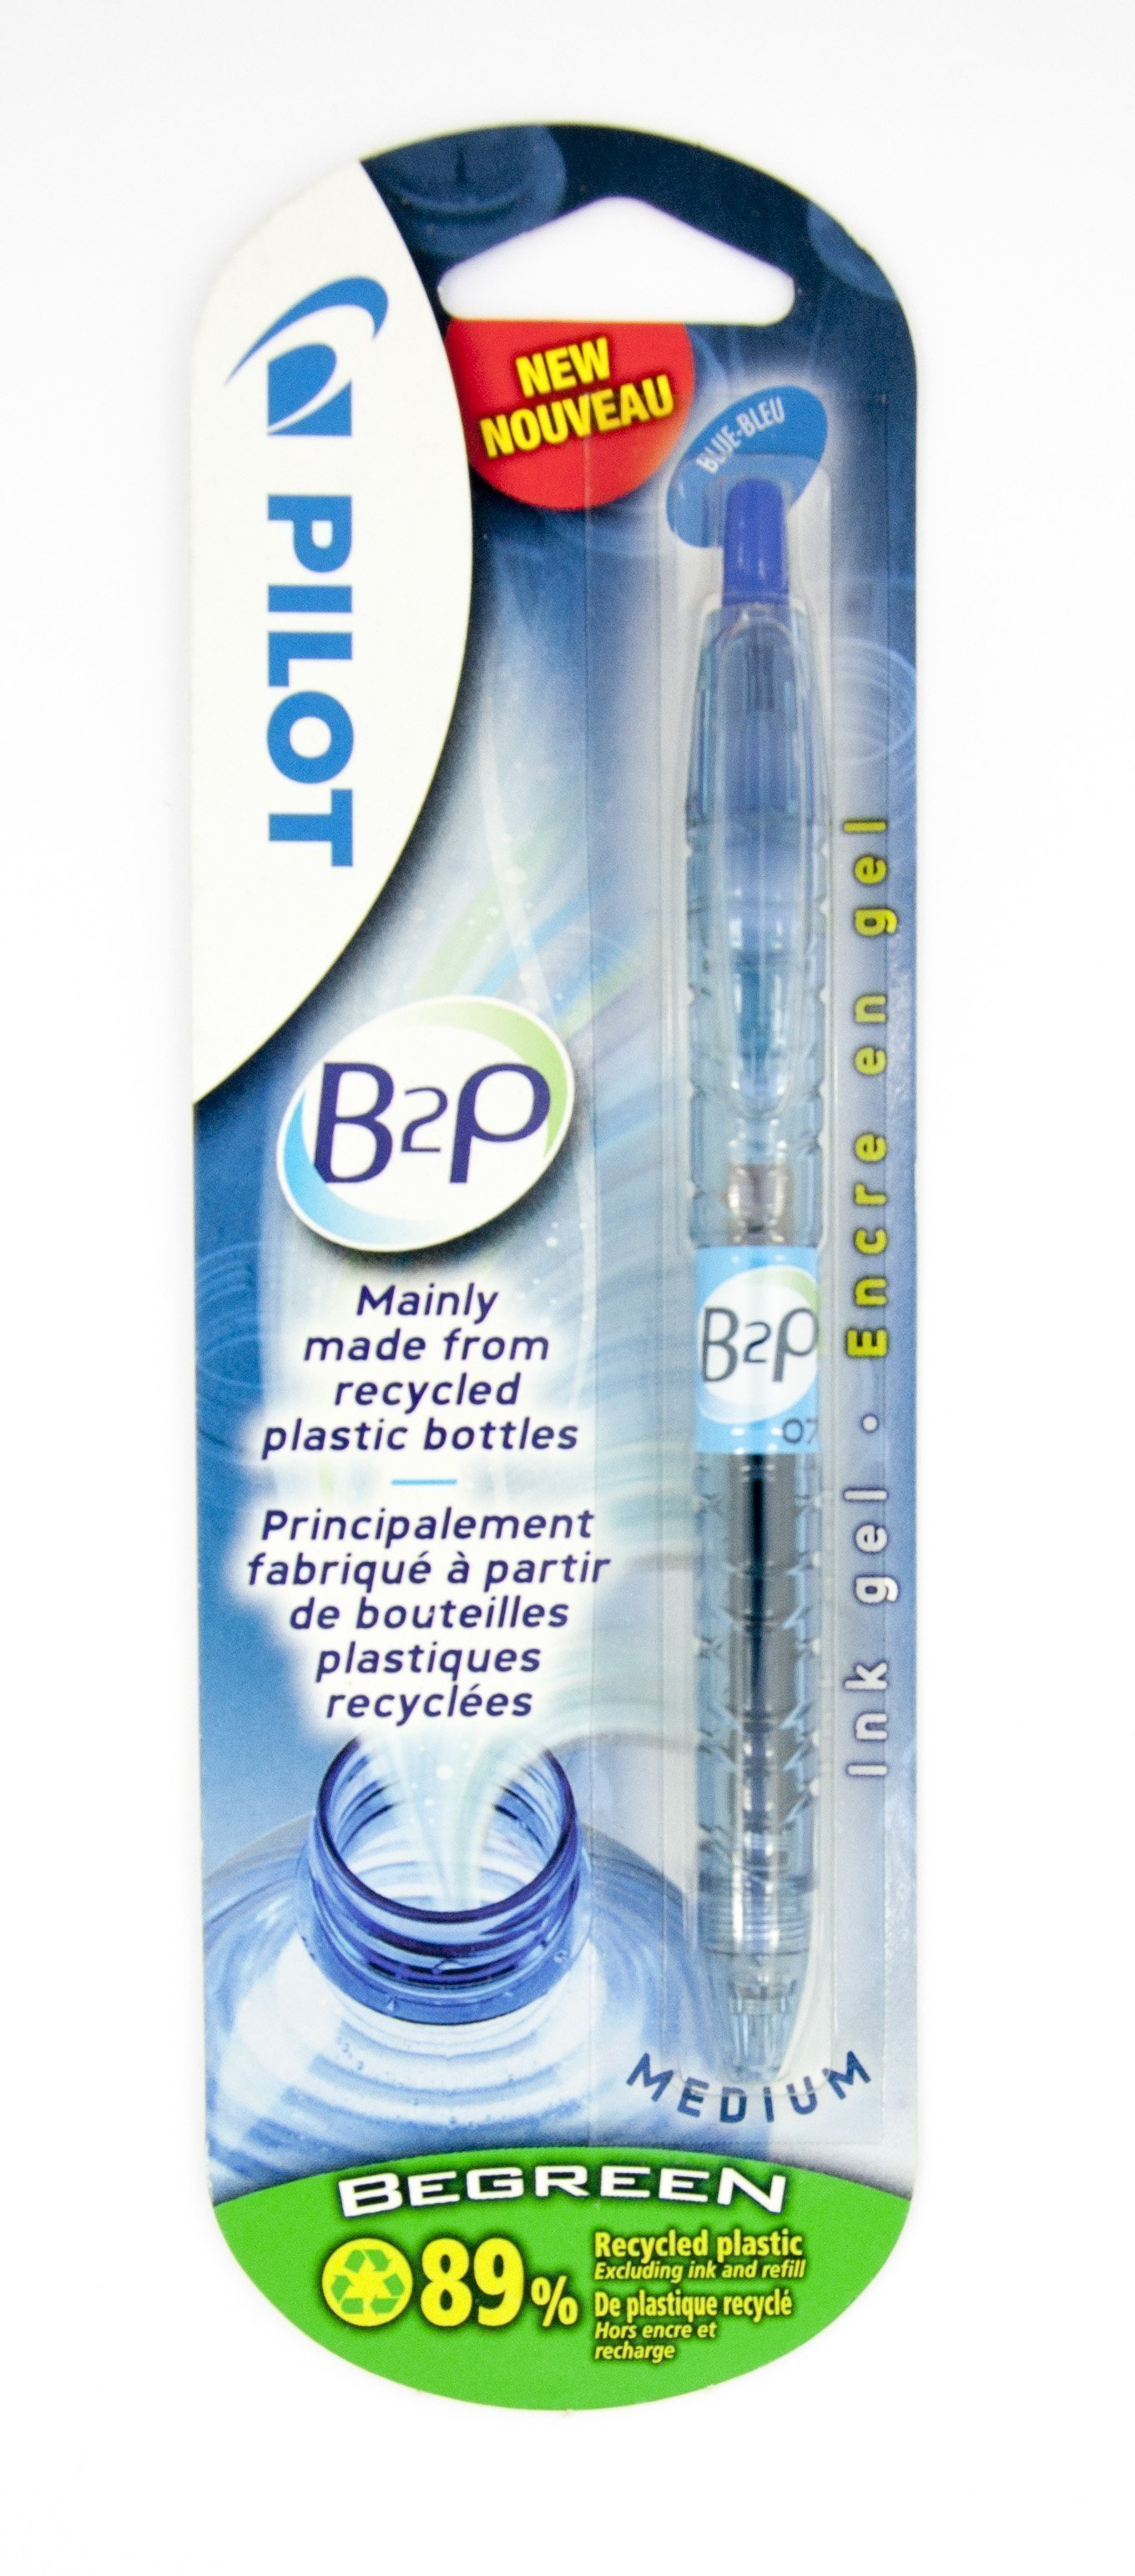 PILOT B2P ROLLER BALL PEN 0.7MM BLUE BLISTER